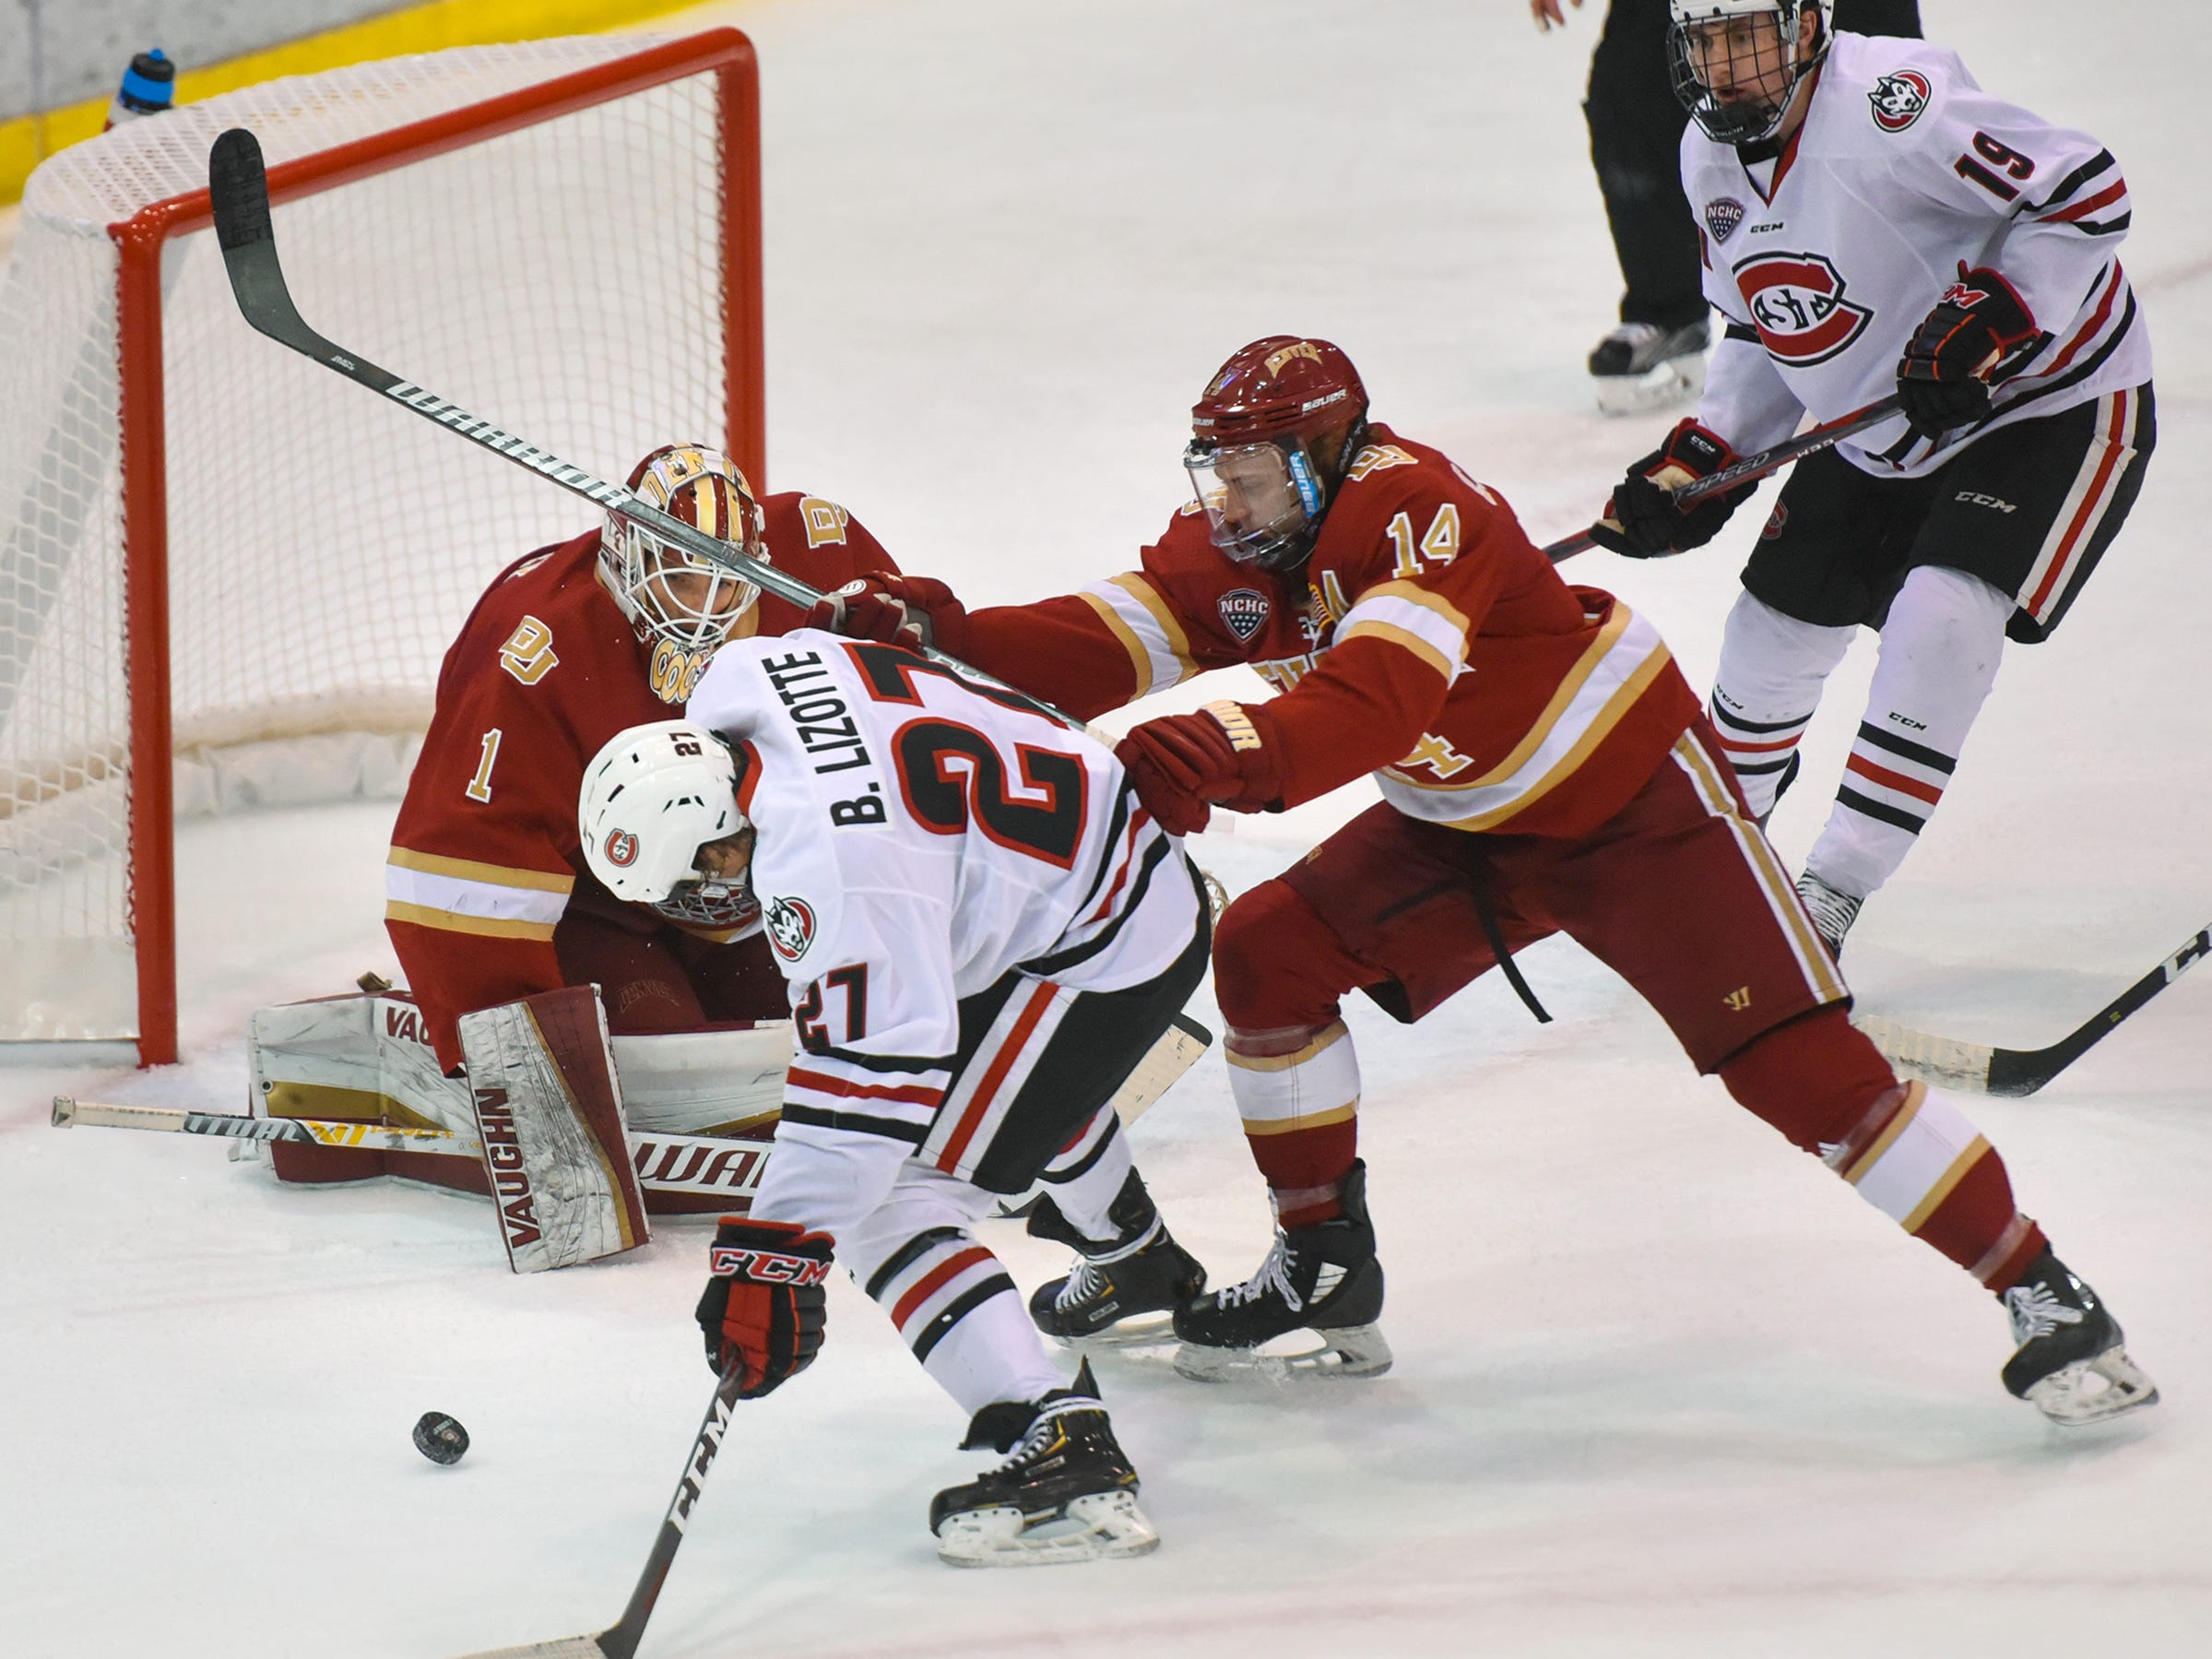 St. Cloud State's Blake Lizotte tries to get a shot on Denver goaltender Devin Cooley during the first period of the Saturday, Nov. 10, game at the Herb Brooks National Hockey Center in St. Cloud.